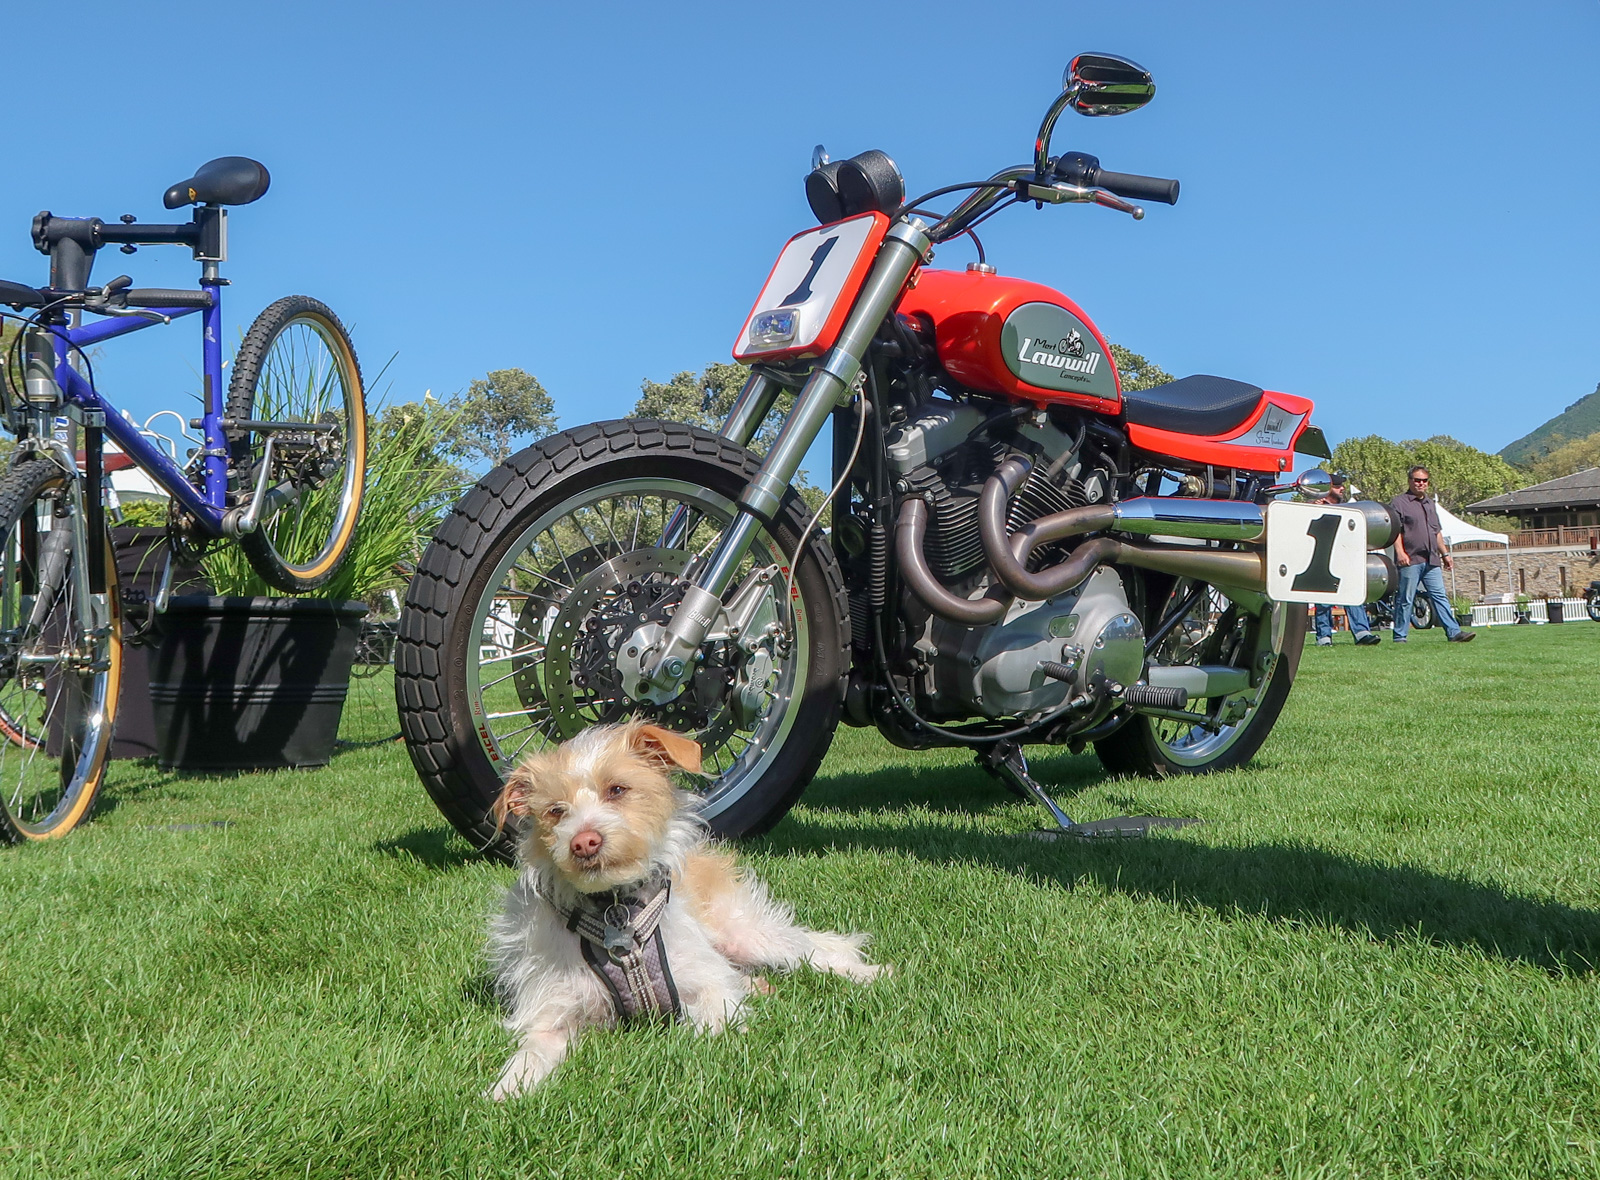 Picture Intermission – Dogs of the 2019 Quail Motorcycle Gathering